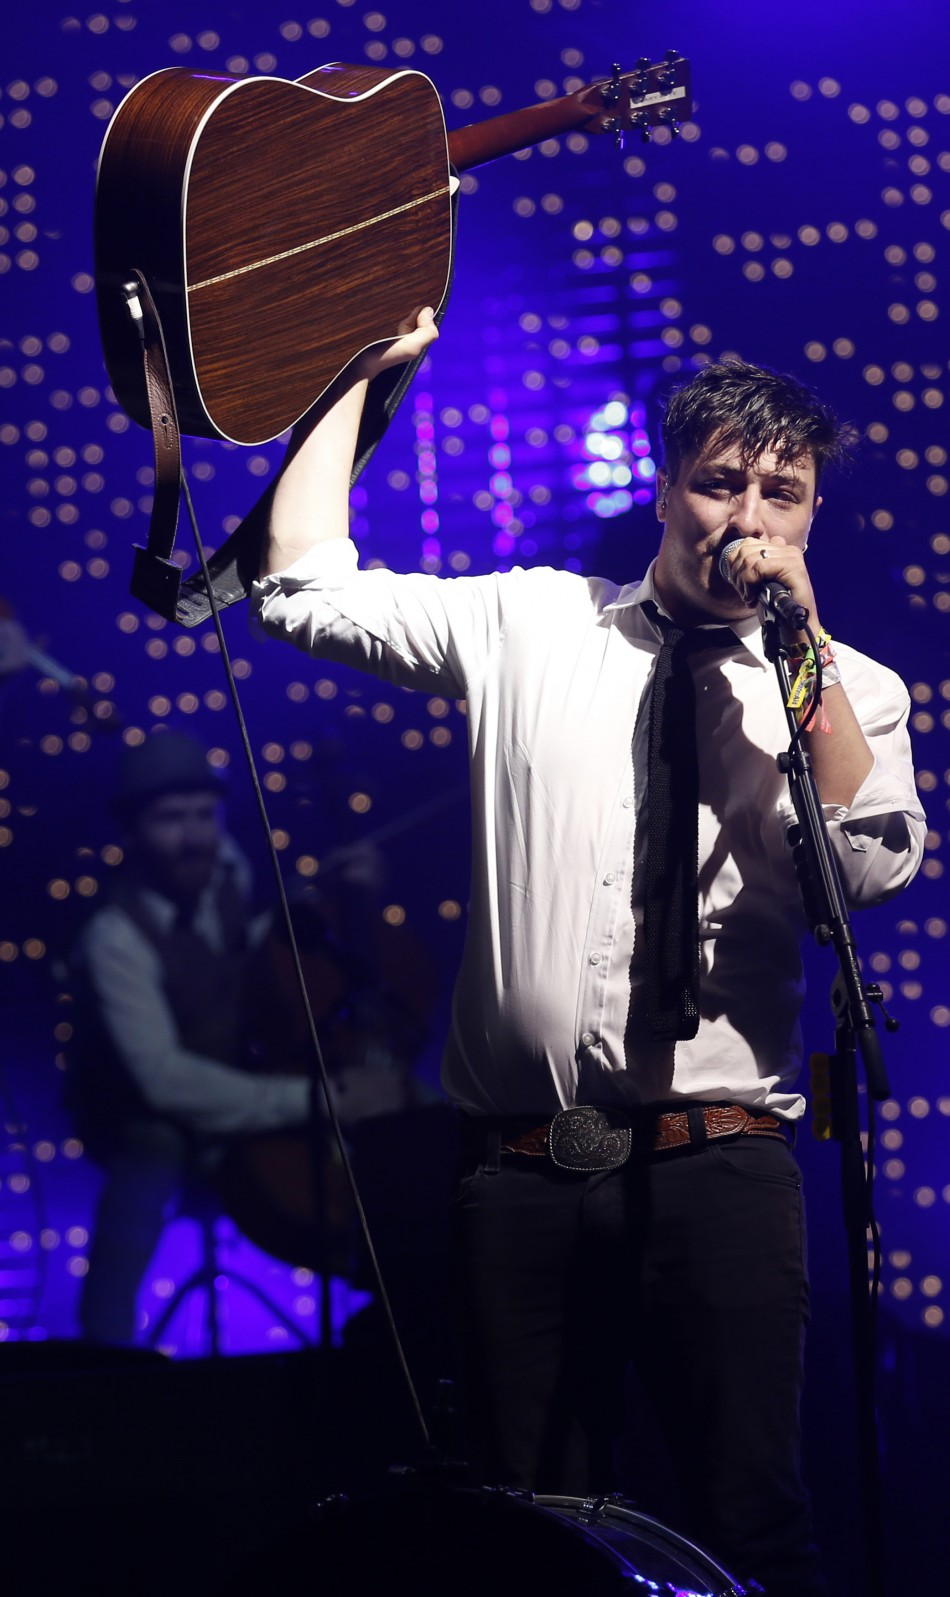 Marcus Mumford, lead singer of Mumford  Sons, performs on the Pyramid Stage at the Glastonbury music festival at Worthy Farm in Somerset, June 30, 2013.